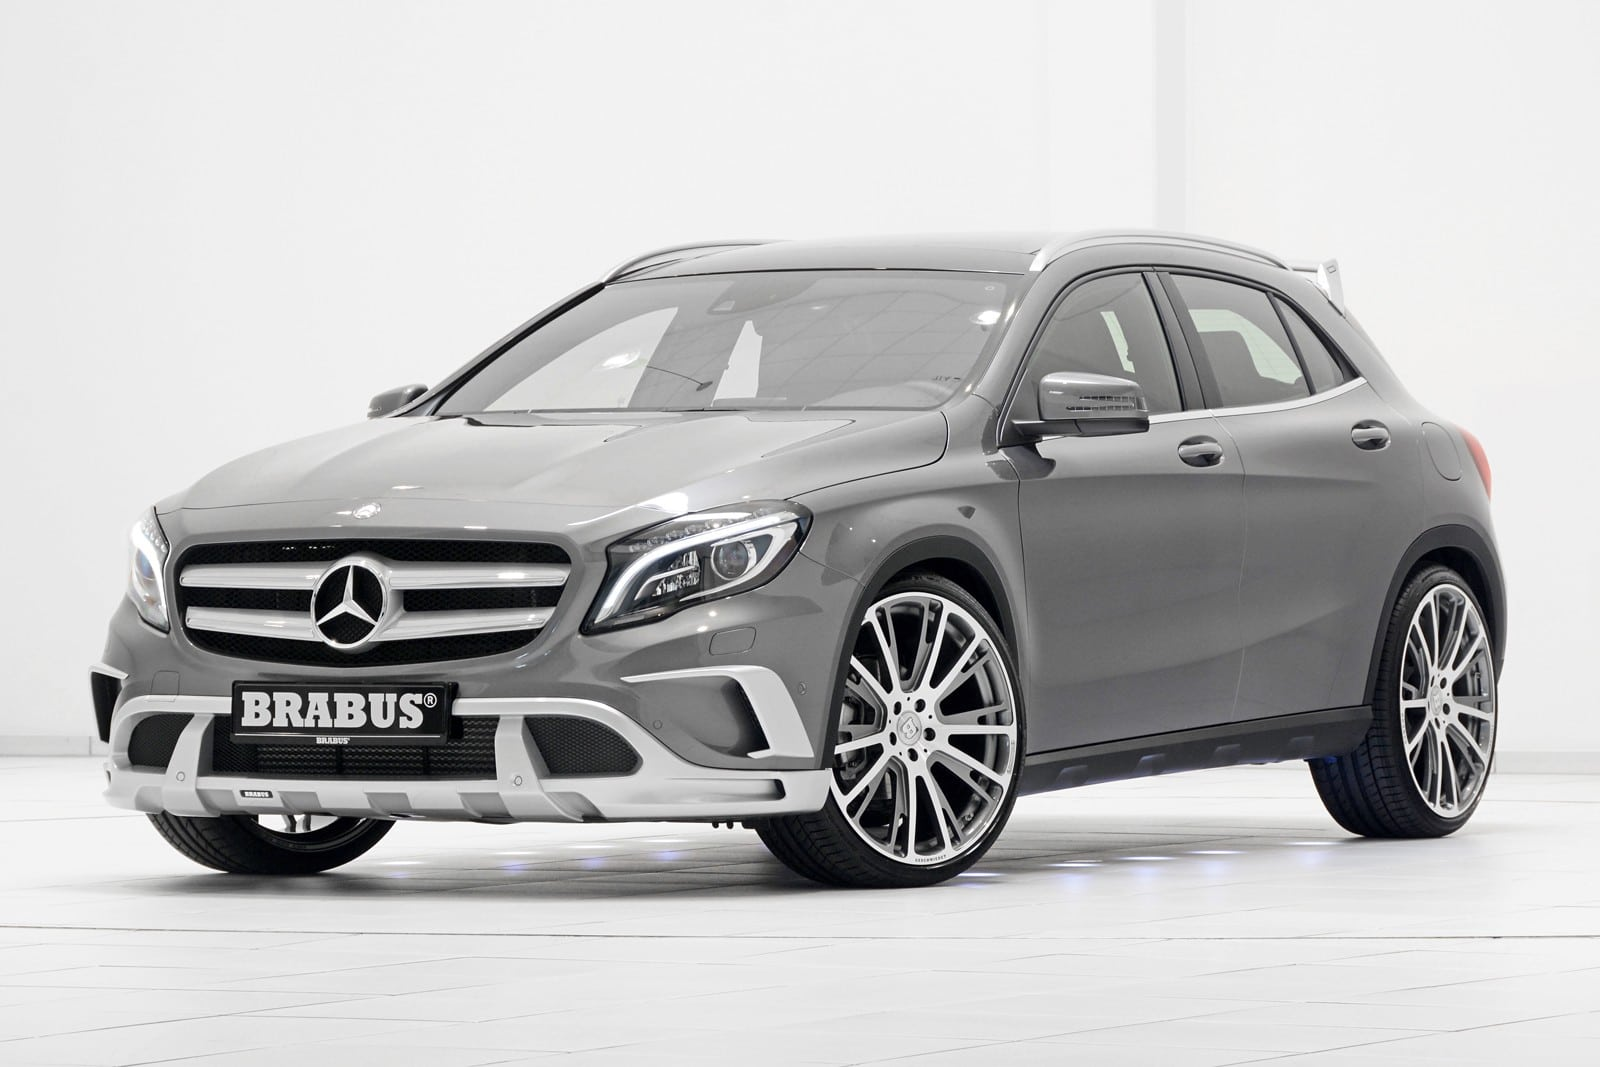 une mercedes gla brabus bas e sur 45 amg ou la 220 cdi. Black Bedroom Furniture Sets. Home Design Ideas